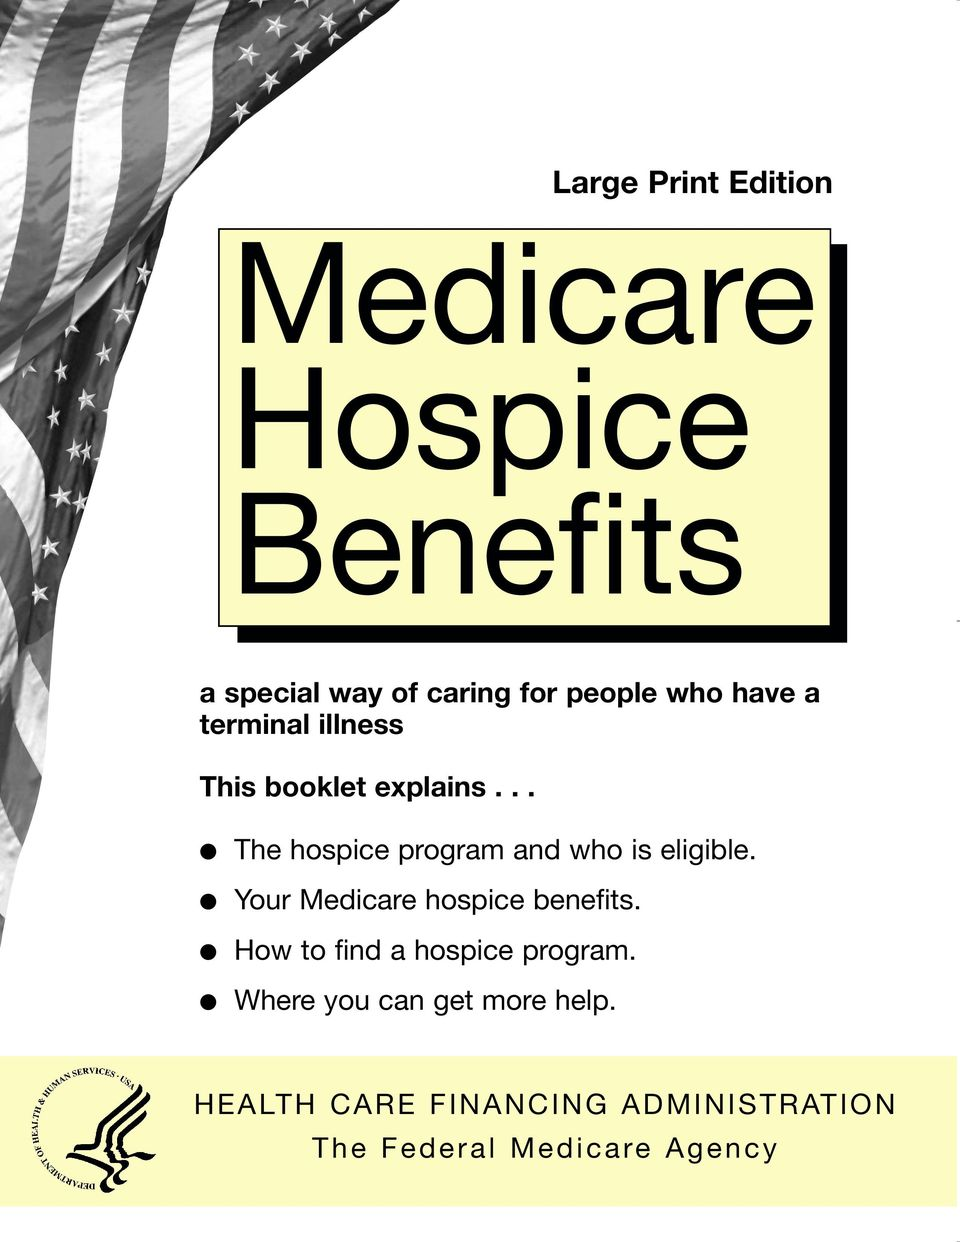 .. The hospice program and who is eligible. Your Medicare hospice benefits.